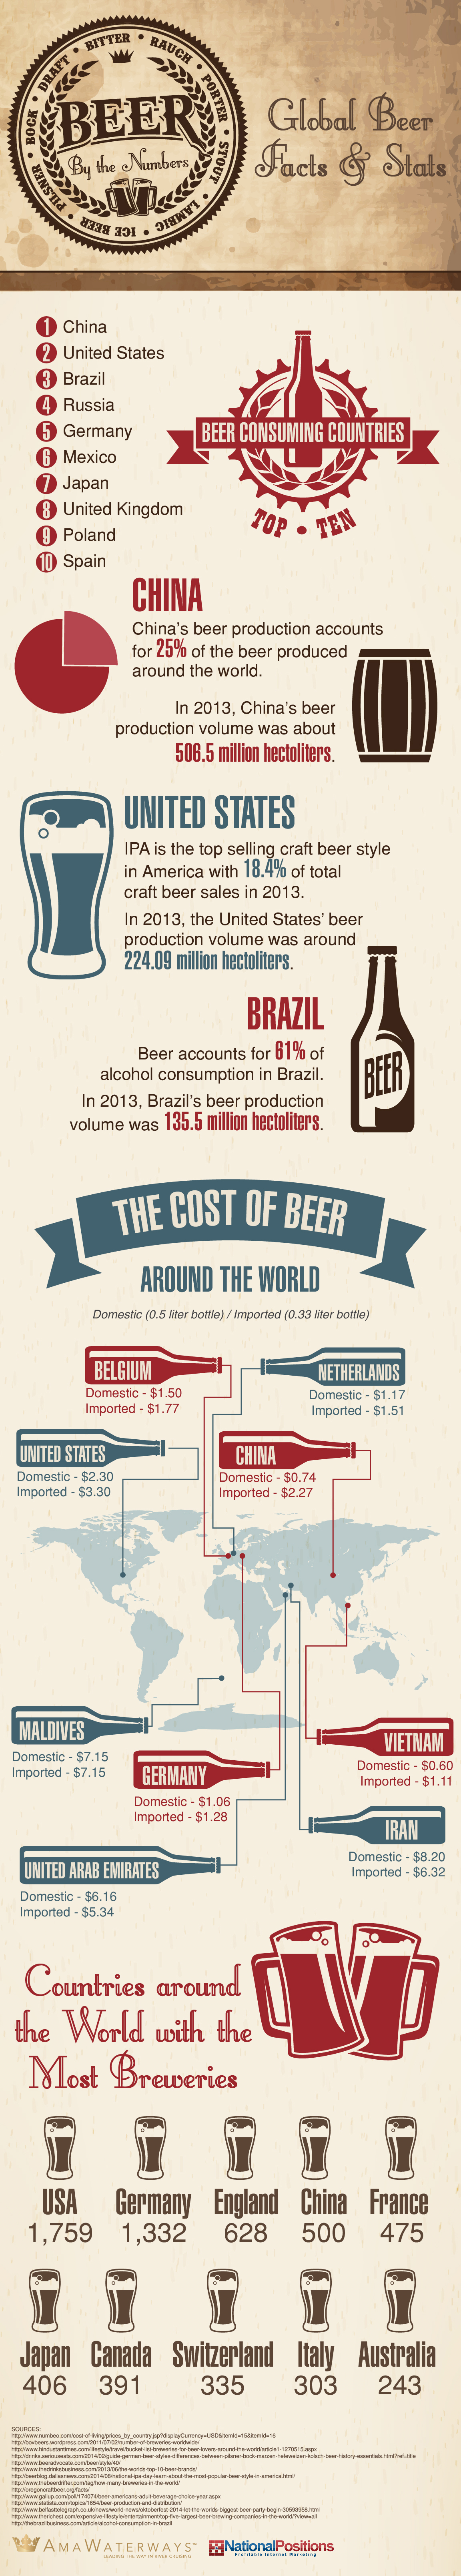 Global Beer Facts & Stats